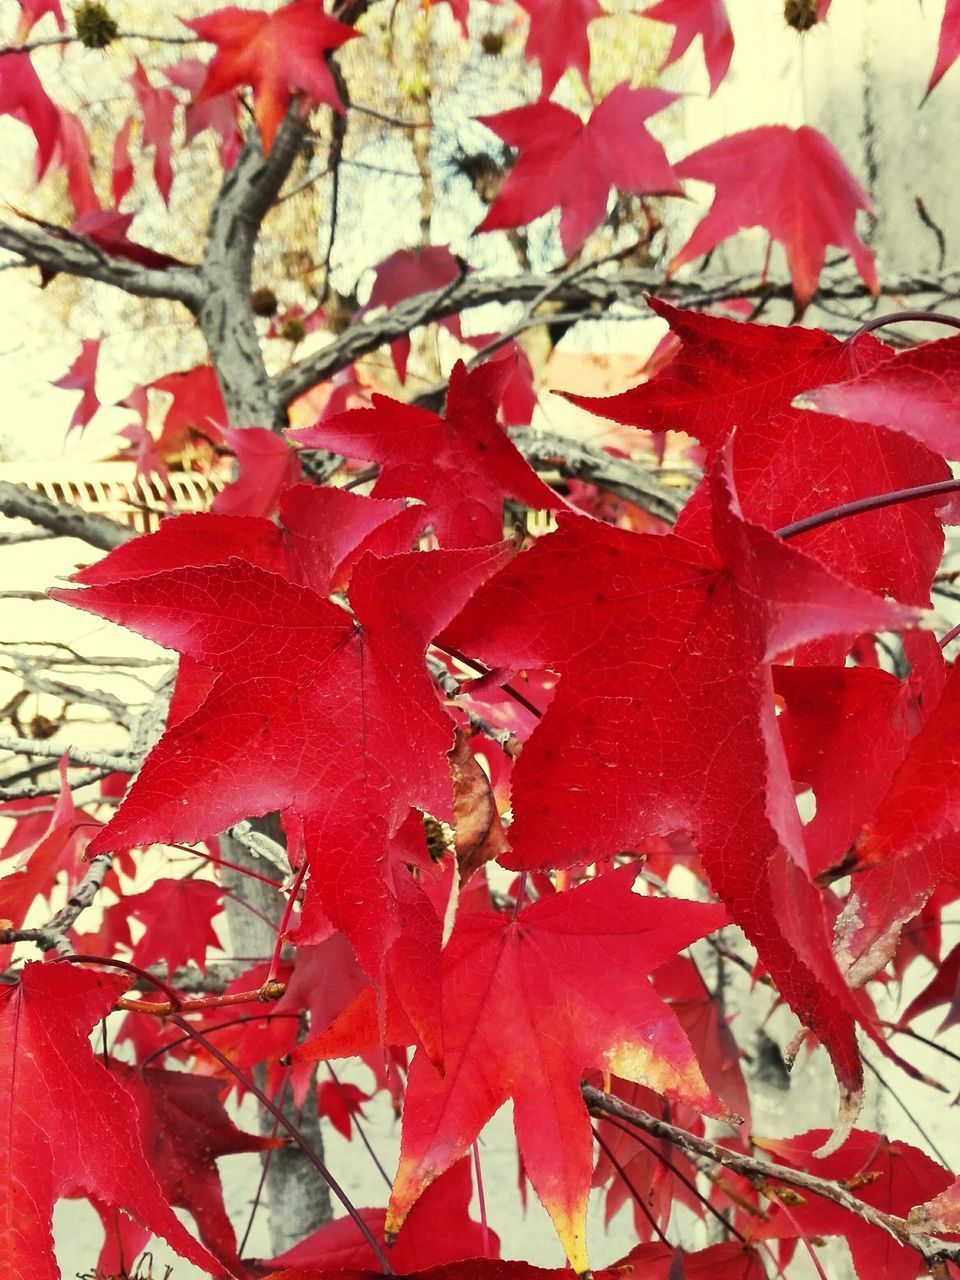 leaf, autumn, change, red, nature, maple leaf, beauty in nature, day, close-up, outdoors, maple, no people, growth, fragility, tree, branch